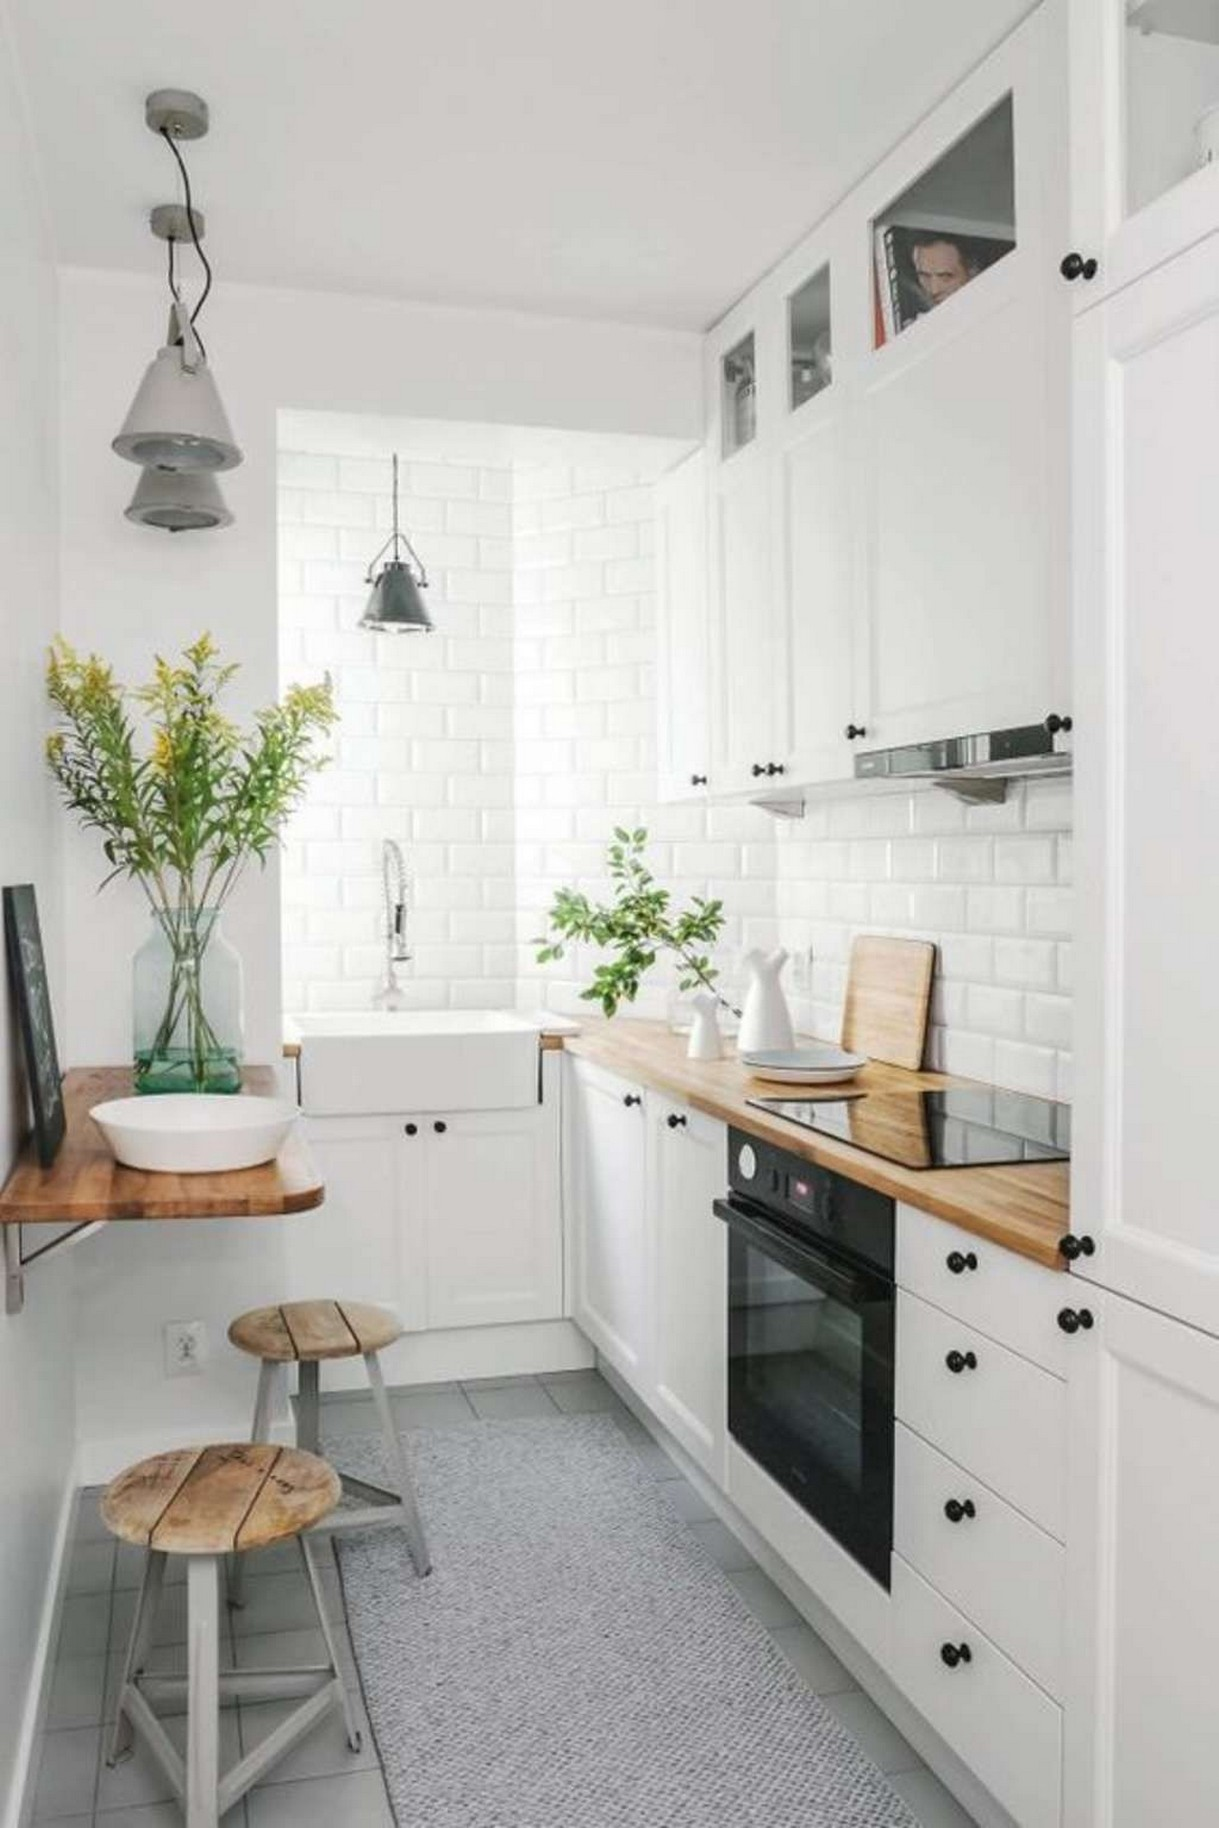 86 Some Small Kitchen Ideas To Help You Do Up Your Kitchen 51